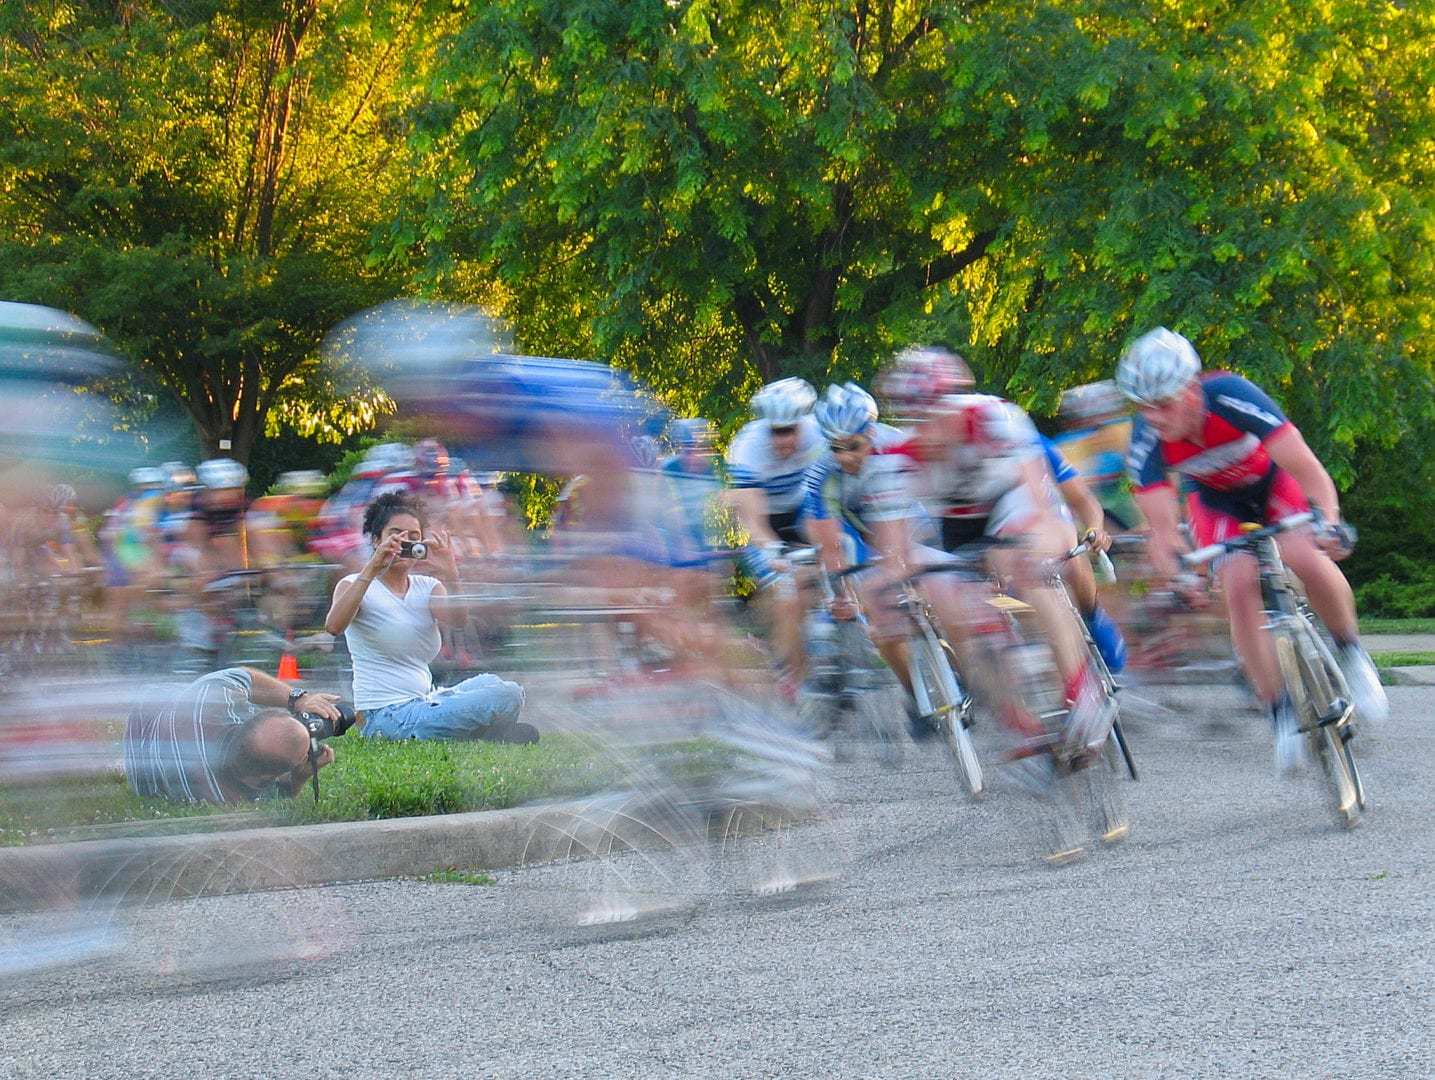 A timelapse blur of cyclists